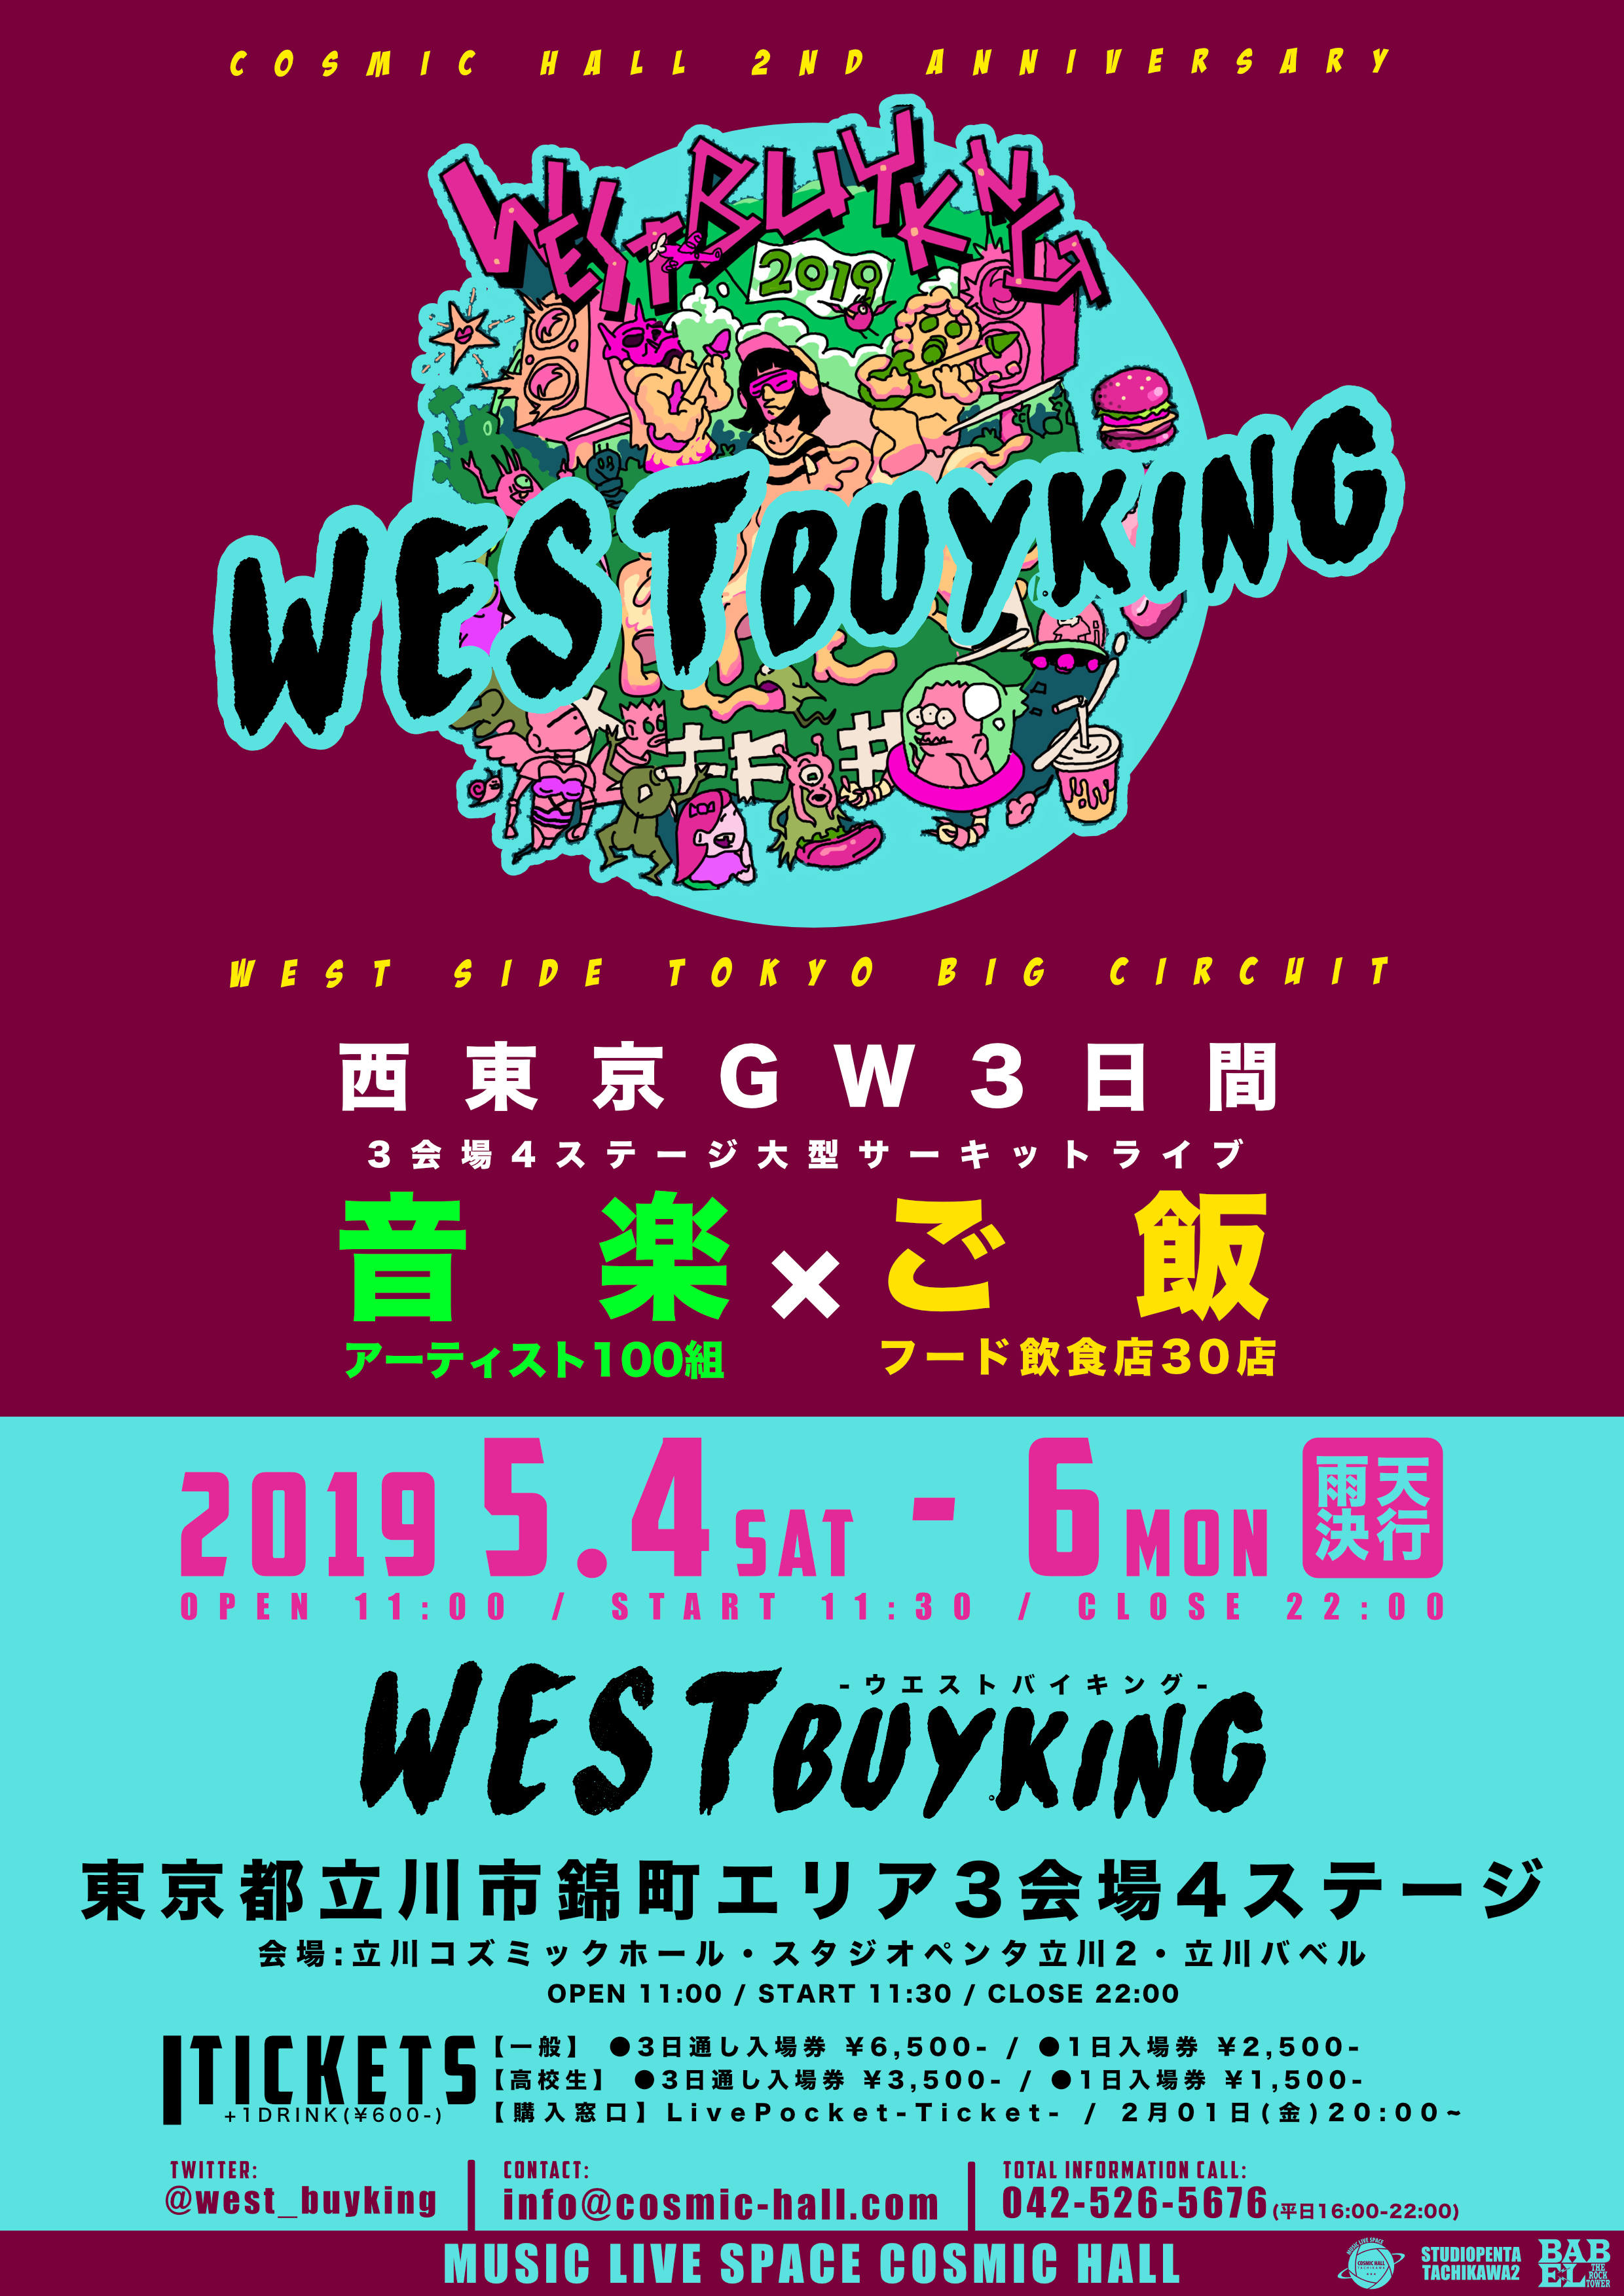 「WEST BUY KING 2019」 〜COSMIC HALL 2nd Anniversary〜